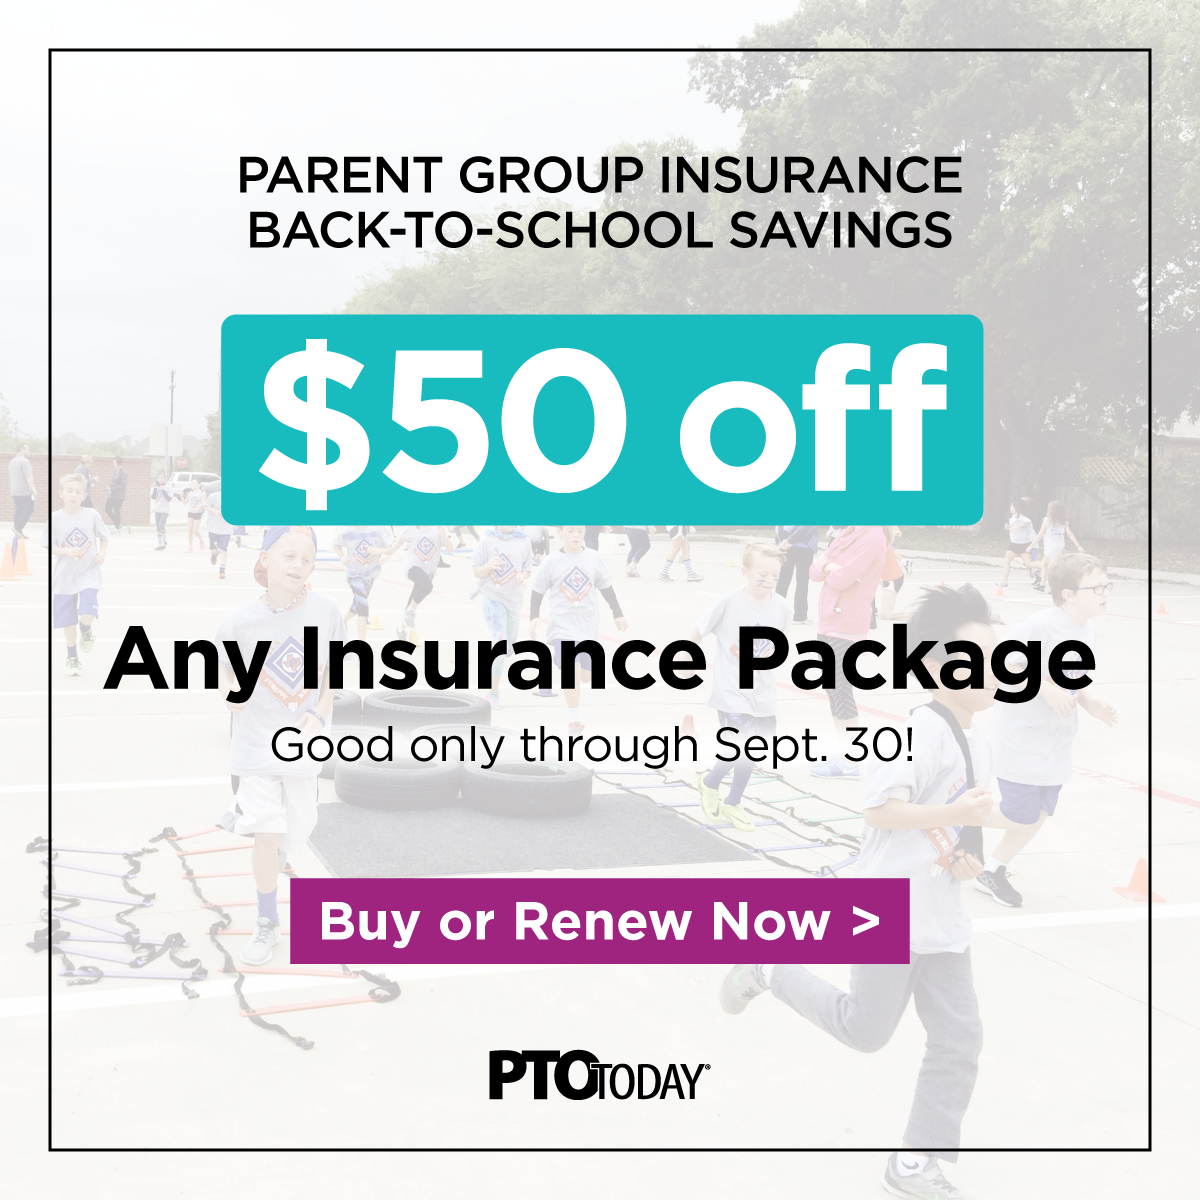 We want to help you start the school year off with one less thing to worry about, so we are offering both new and returning customers $50 off any PTO Today insurance package purchase now through September 30th. Buy now with promo code 50fall20. http://ow.ly/AlFZ50AKvyrpic.twitter.com/3Qf9DHCKWn